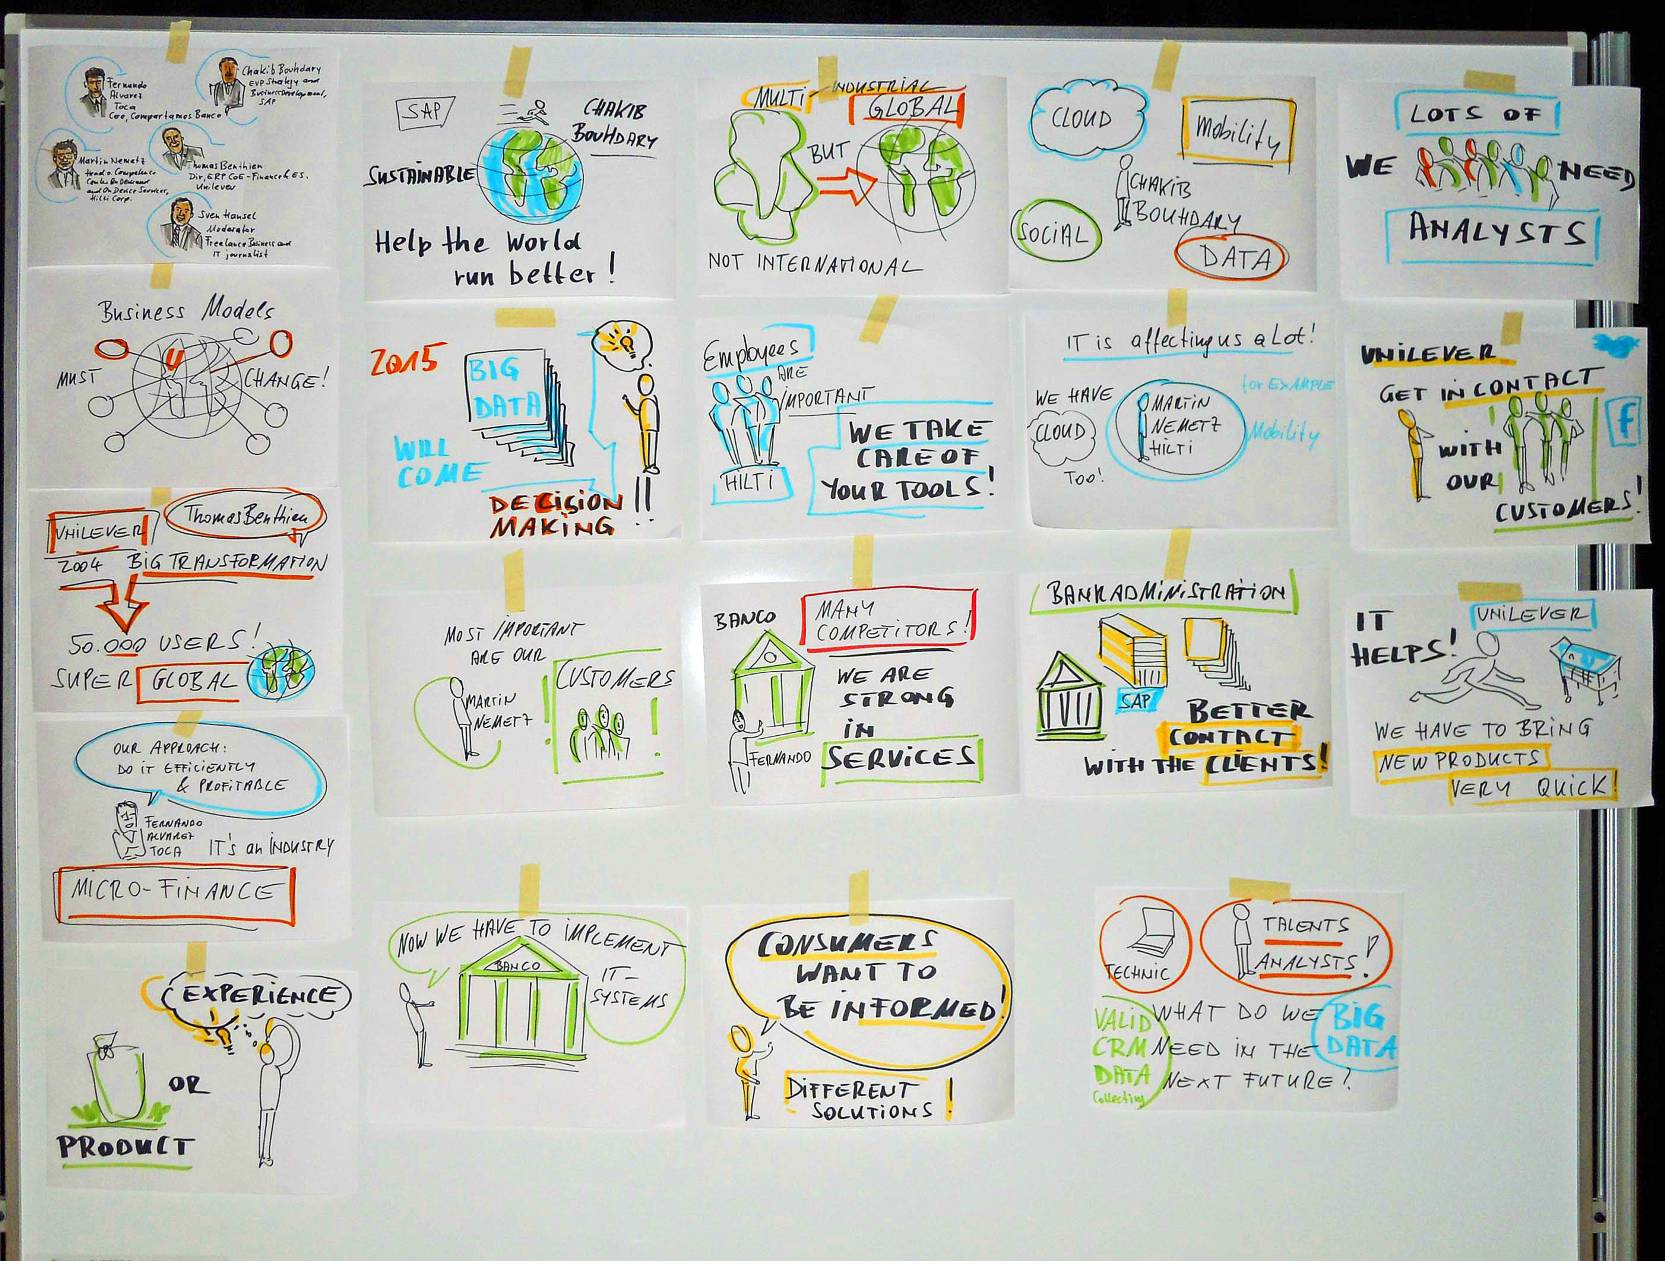 08 Juli 2013 Graphic Recording einer Diskussion 1